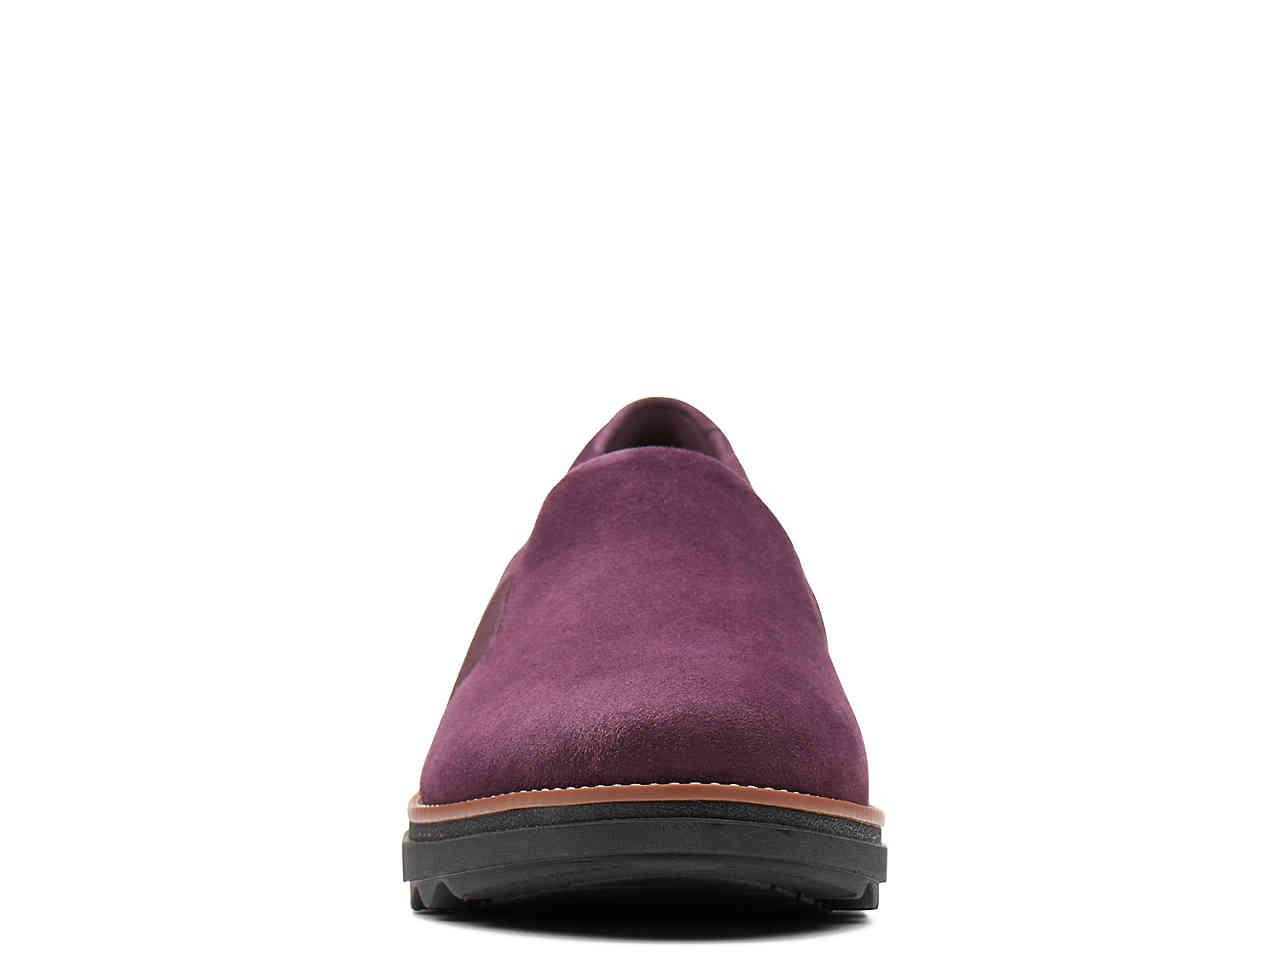 bfe332d3c4 ... Sharon Tori Wedge Slip-on - Lyst. View fullscreen